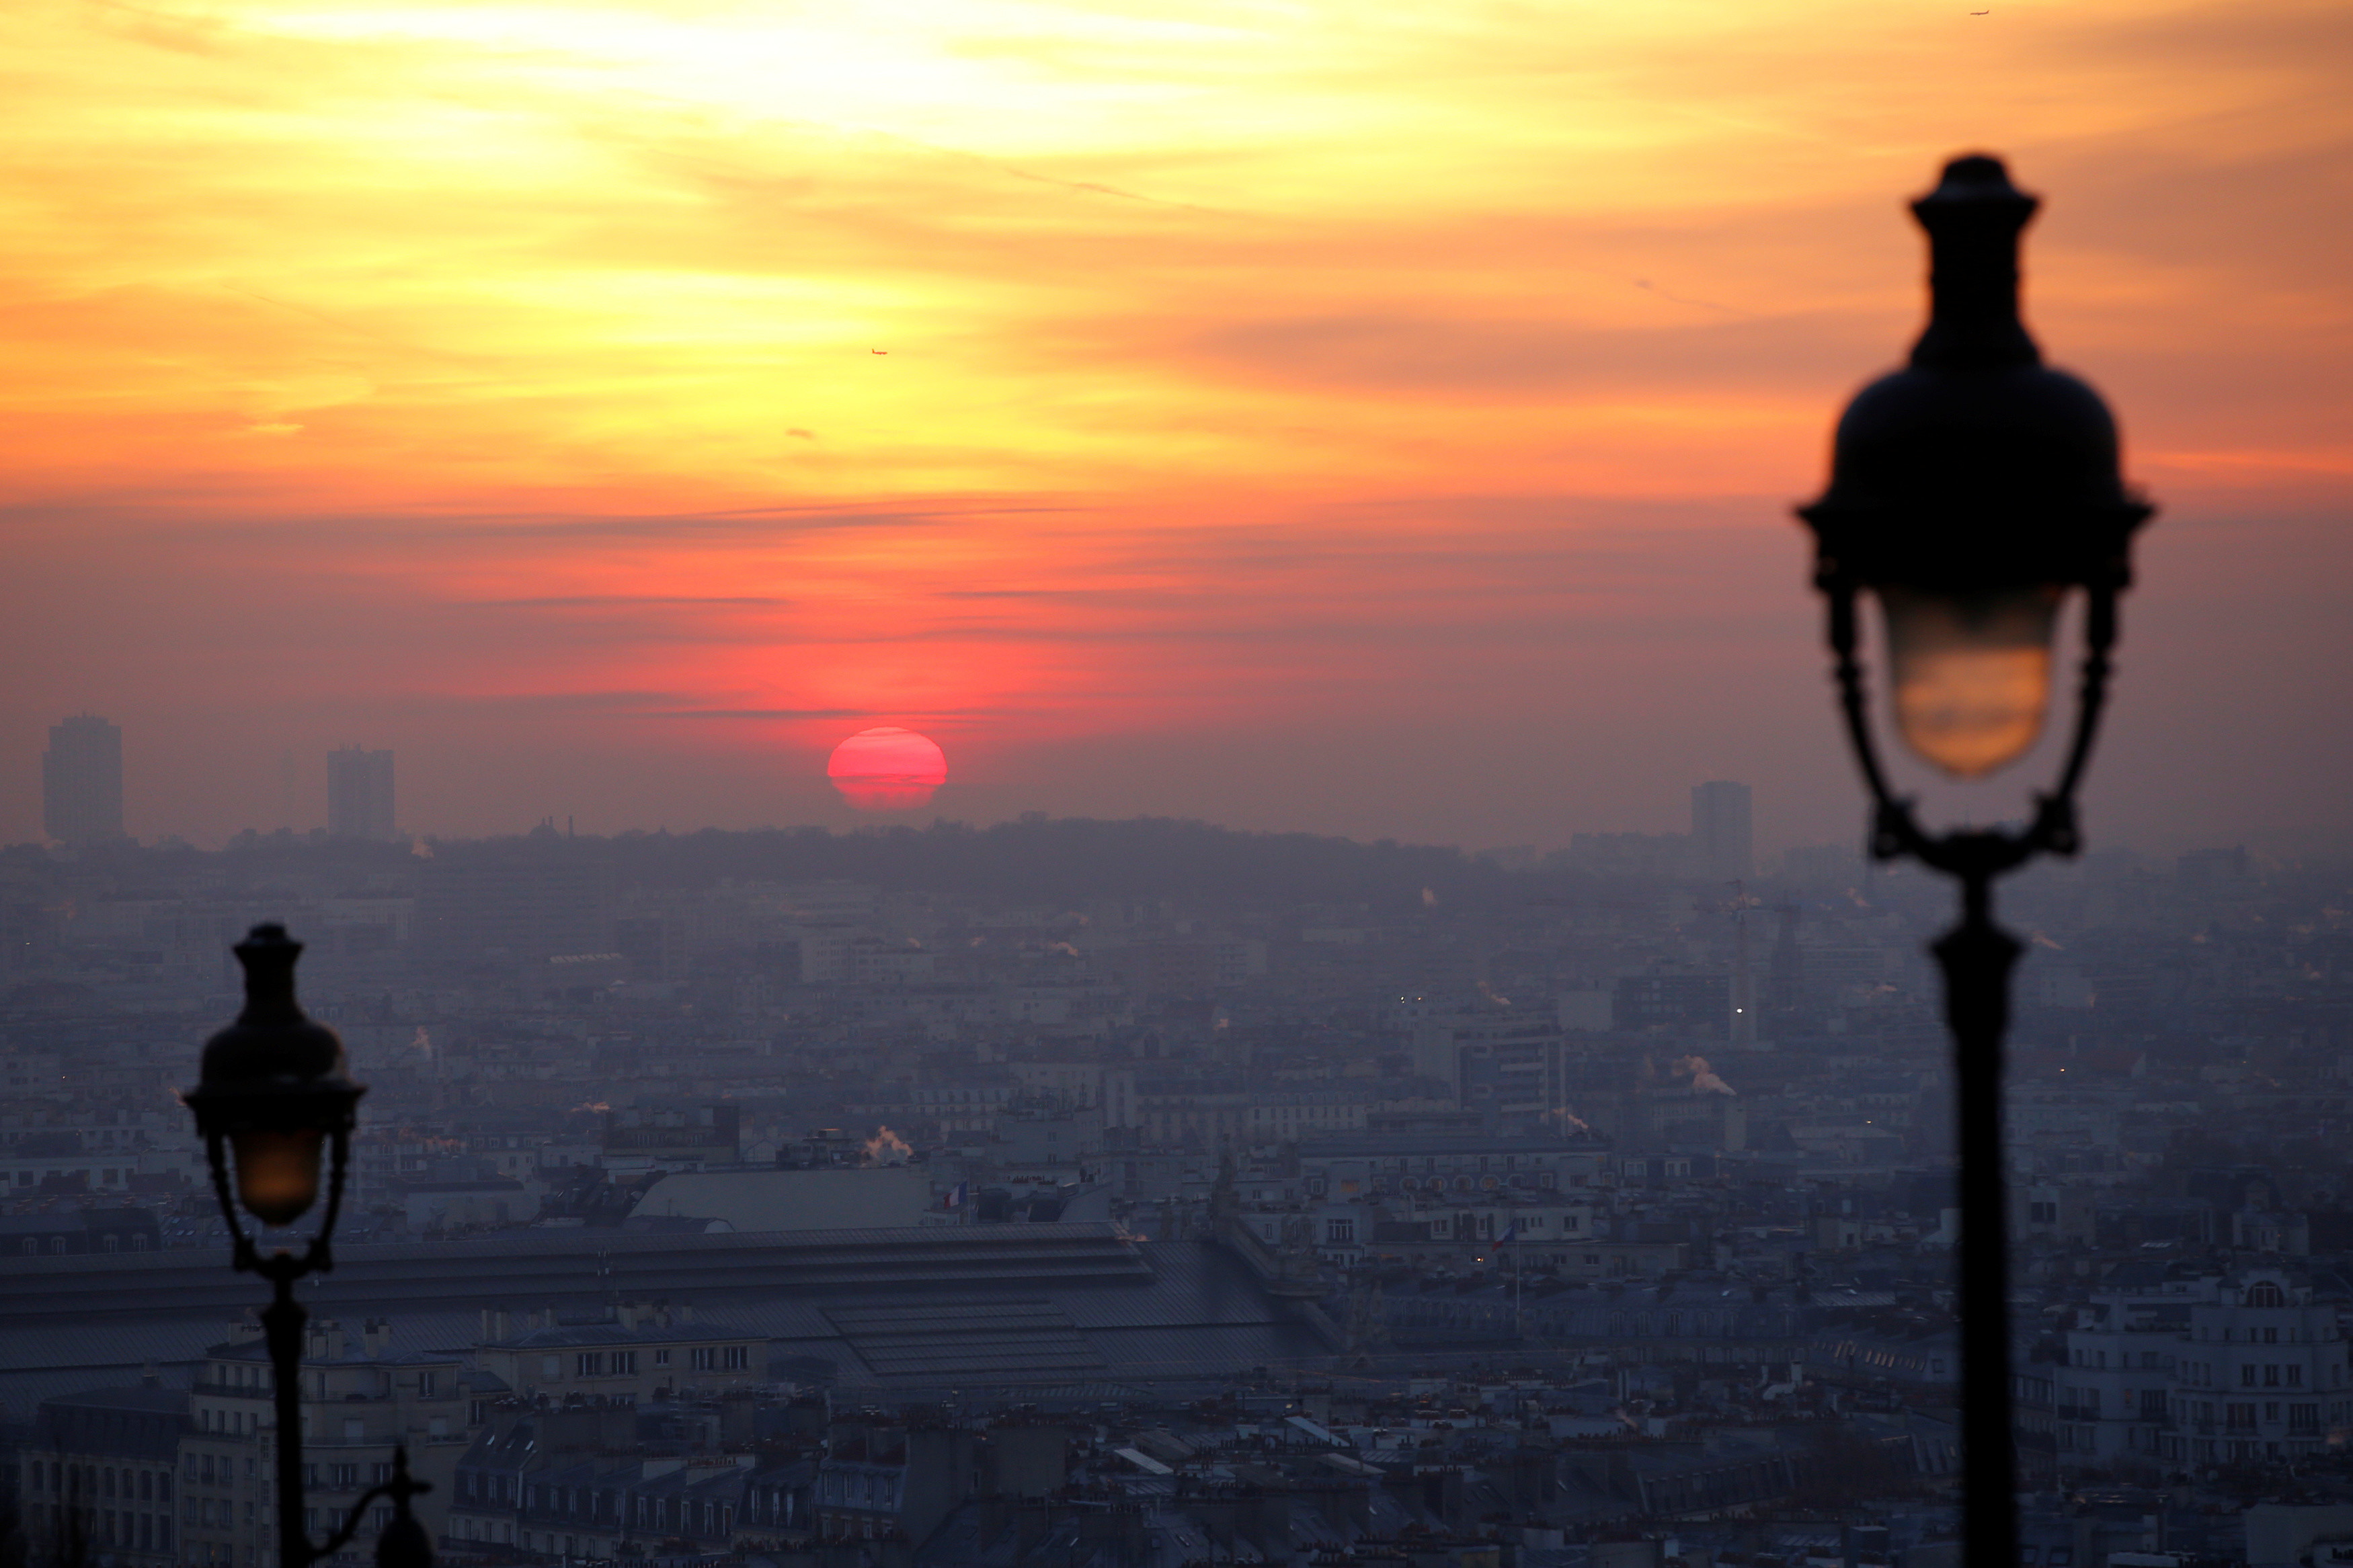 Heavy pollution in Paris – site of the historic Paris Agreement on climate change.